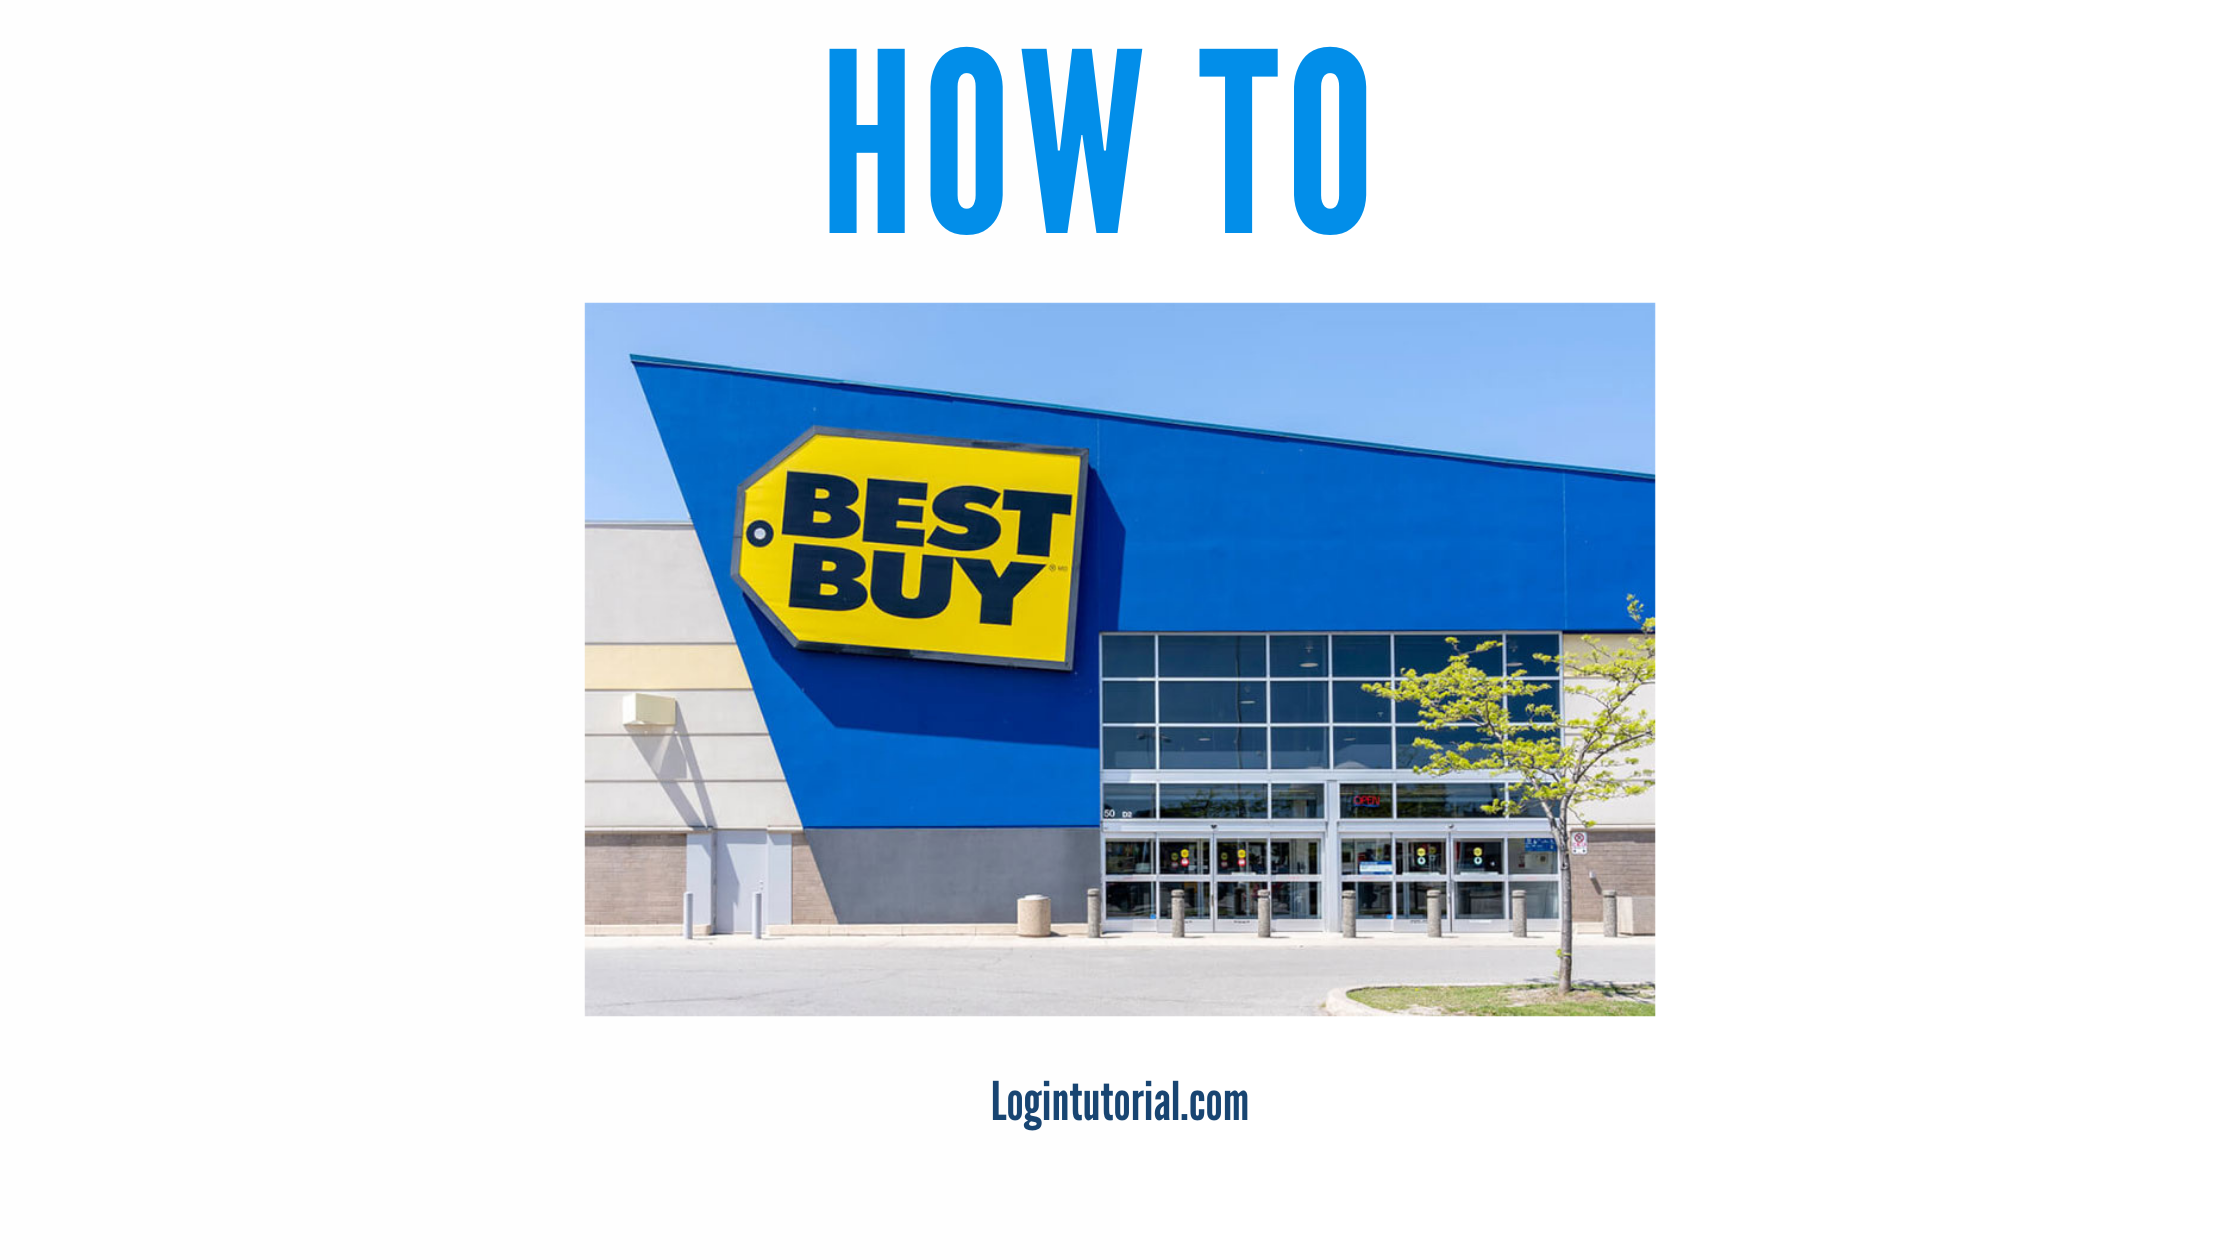 bestbuy login guide with its benefits